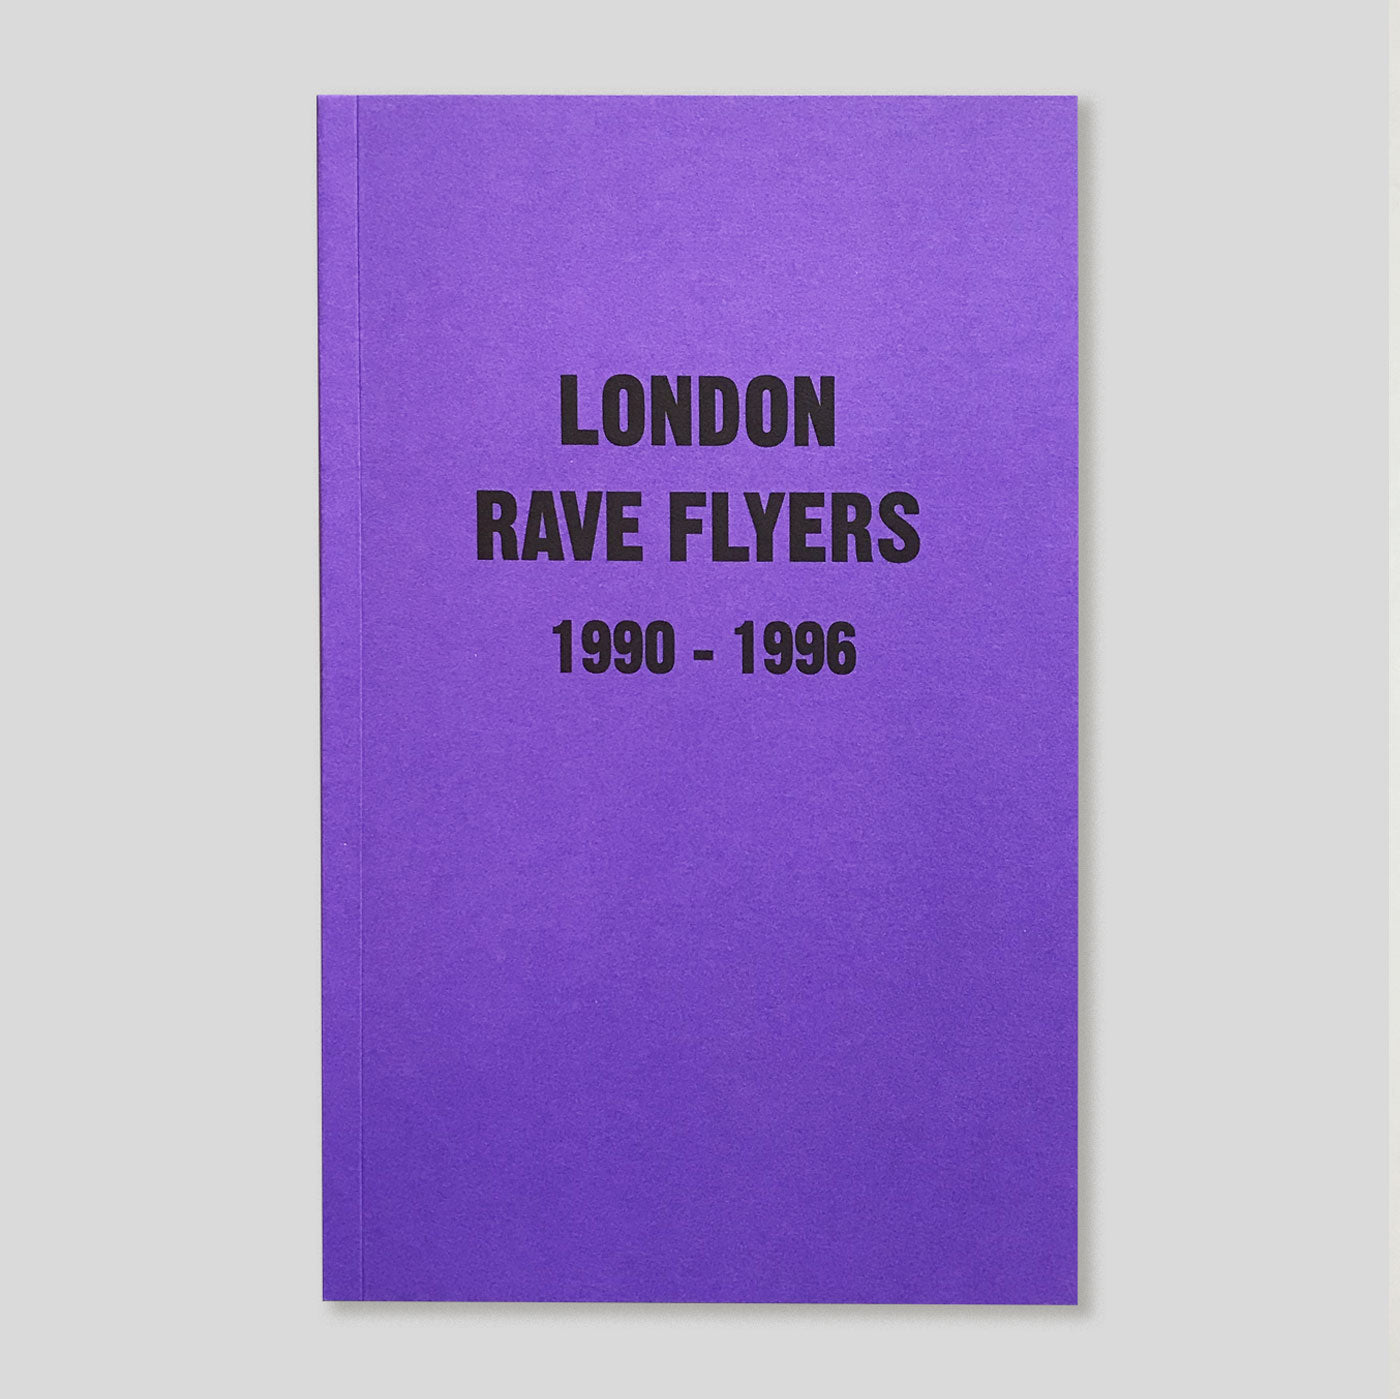 London Rave Flyers 1990-1996 | Colours May Vary